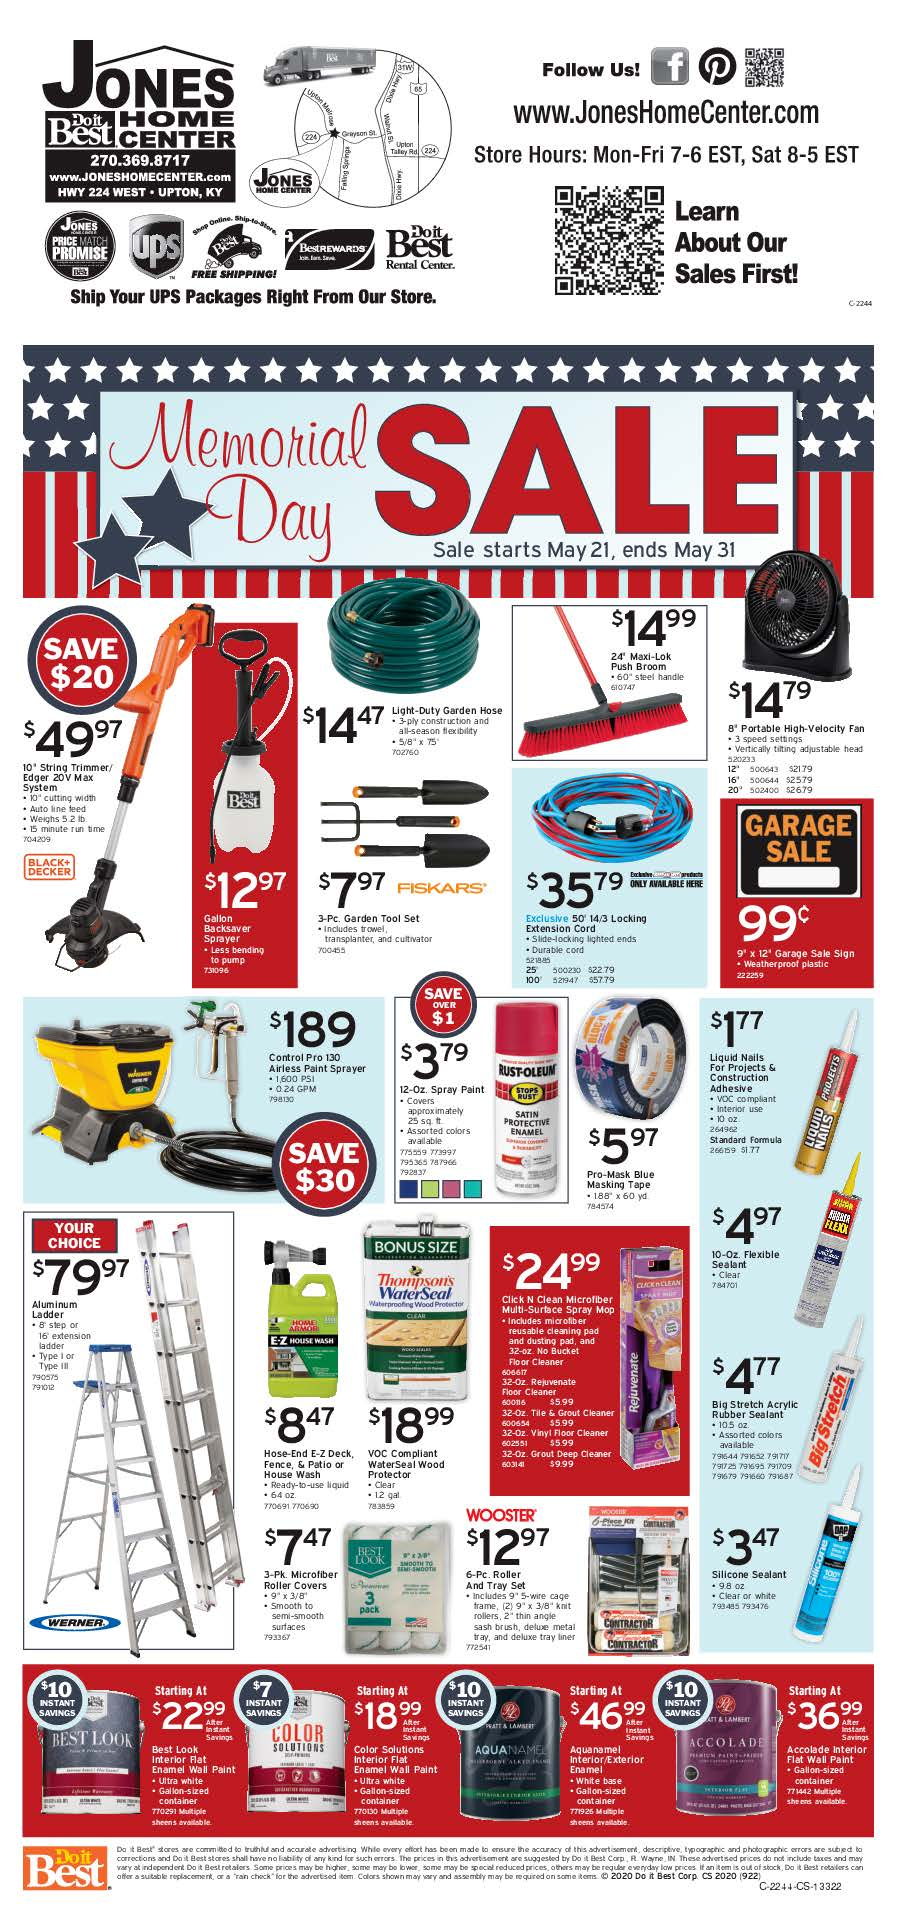 Memorial Day Sale Page 2